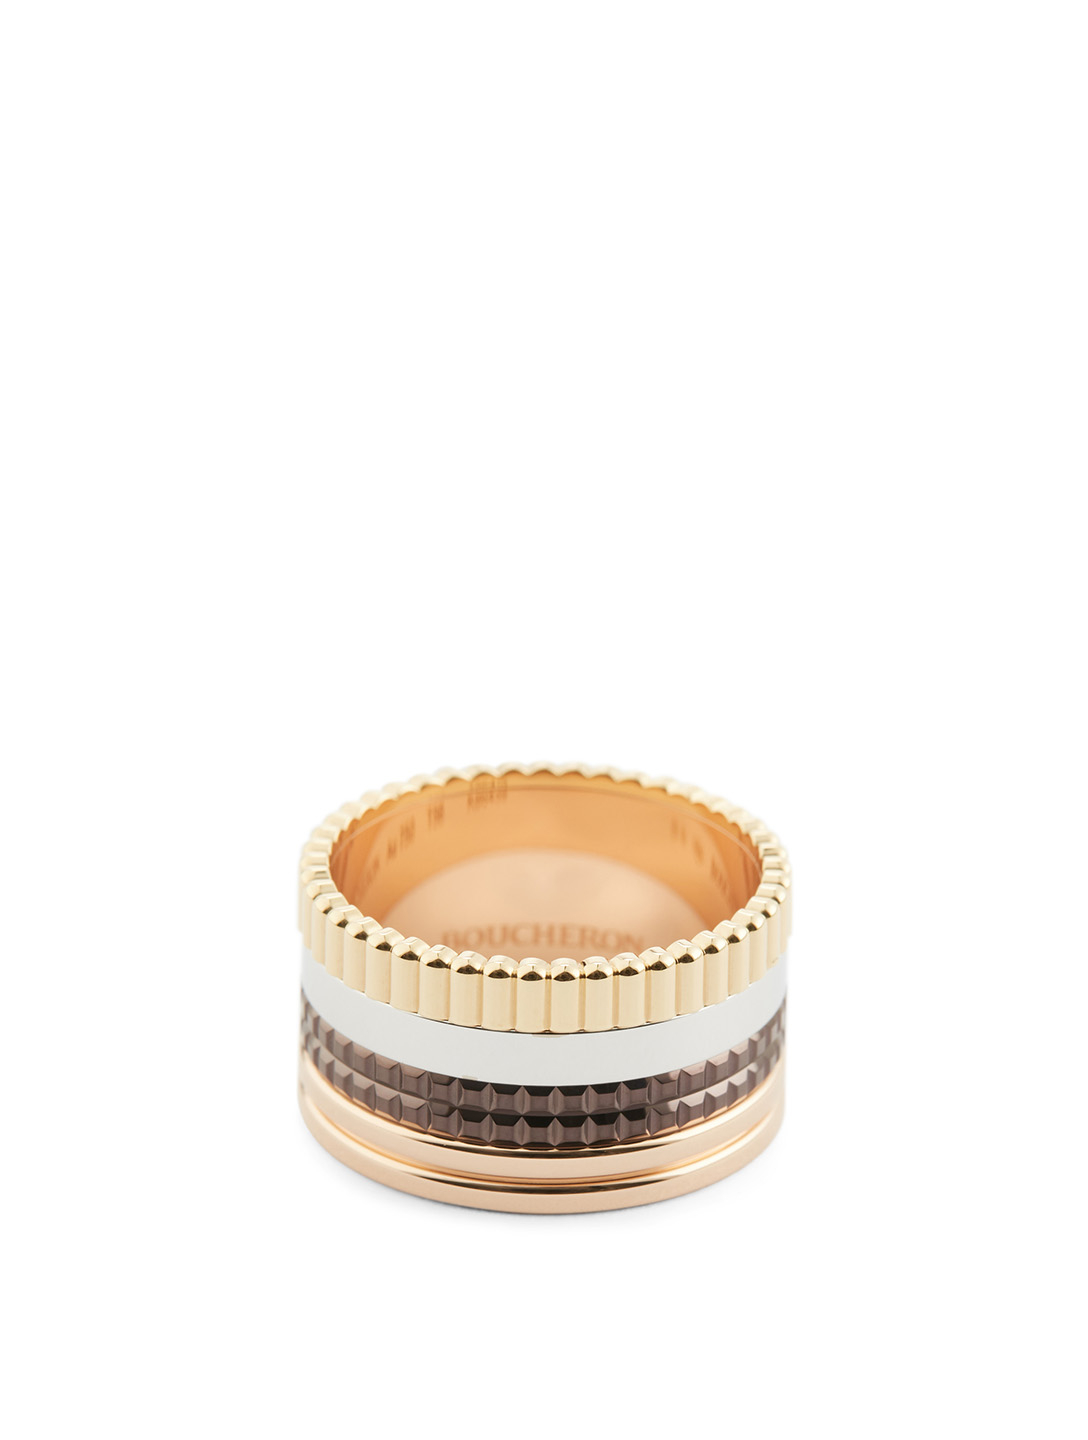 BOUCHERON Large Quatre Classique Gold Ring With Brown PVD Womens Metallic